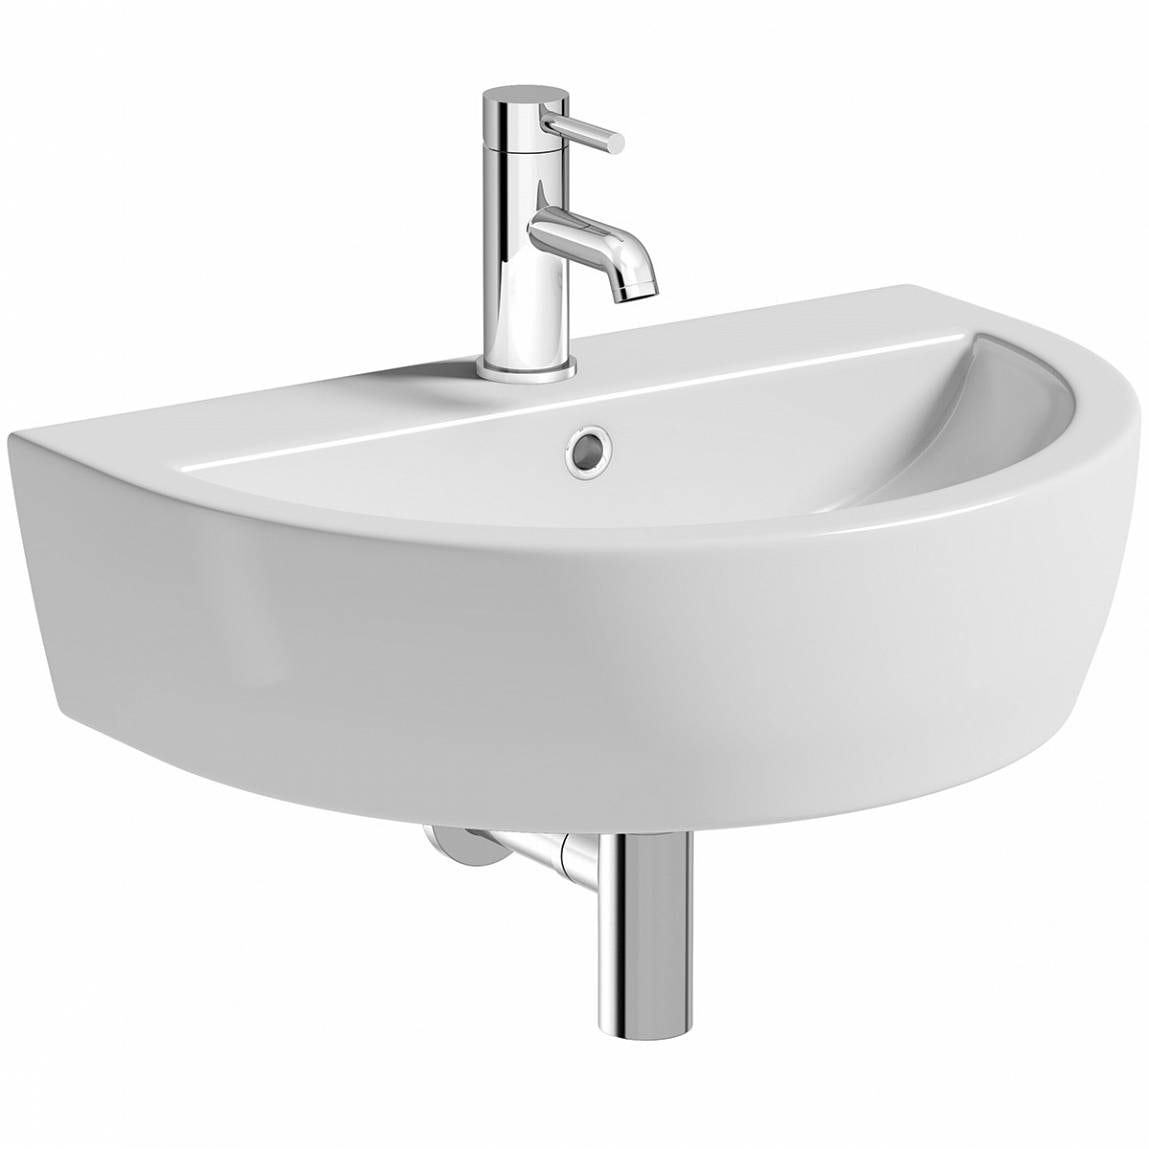 Mode Tate 1 tap hole wall hung basin 550mm with waste